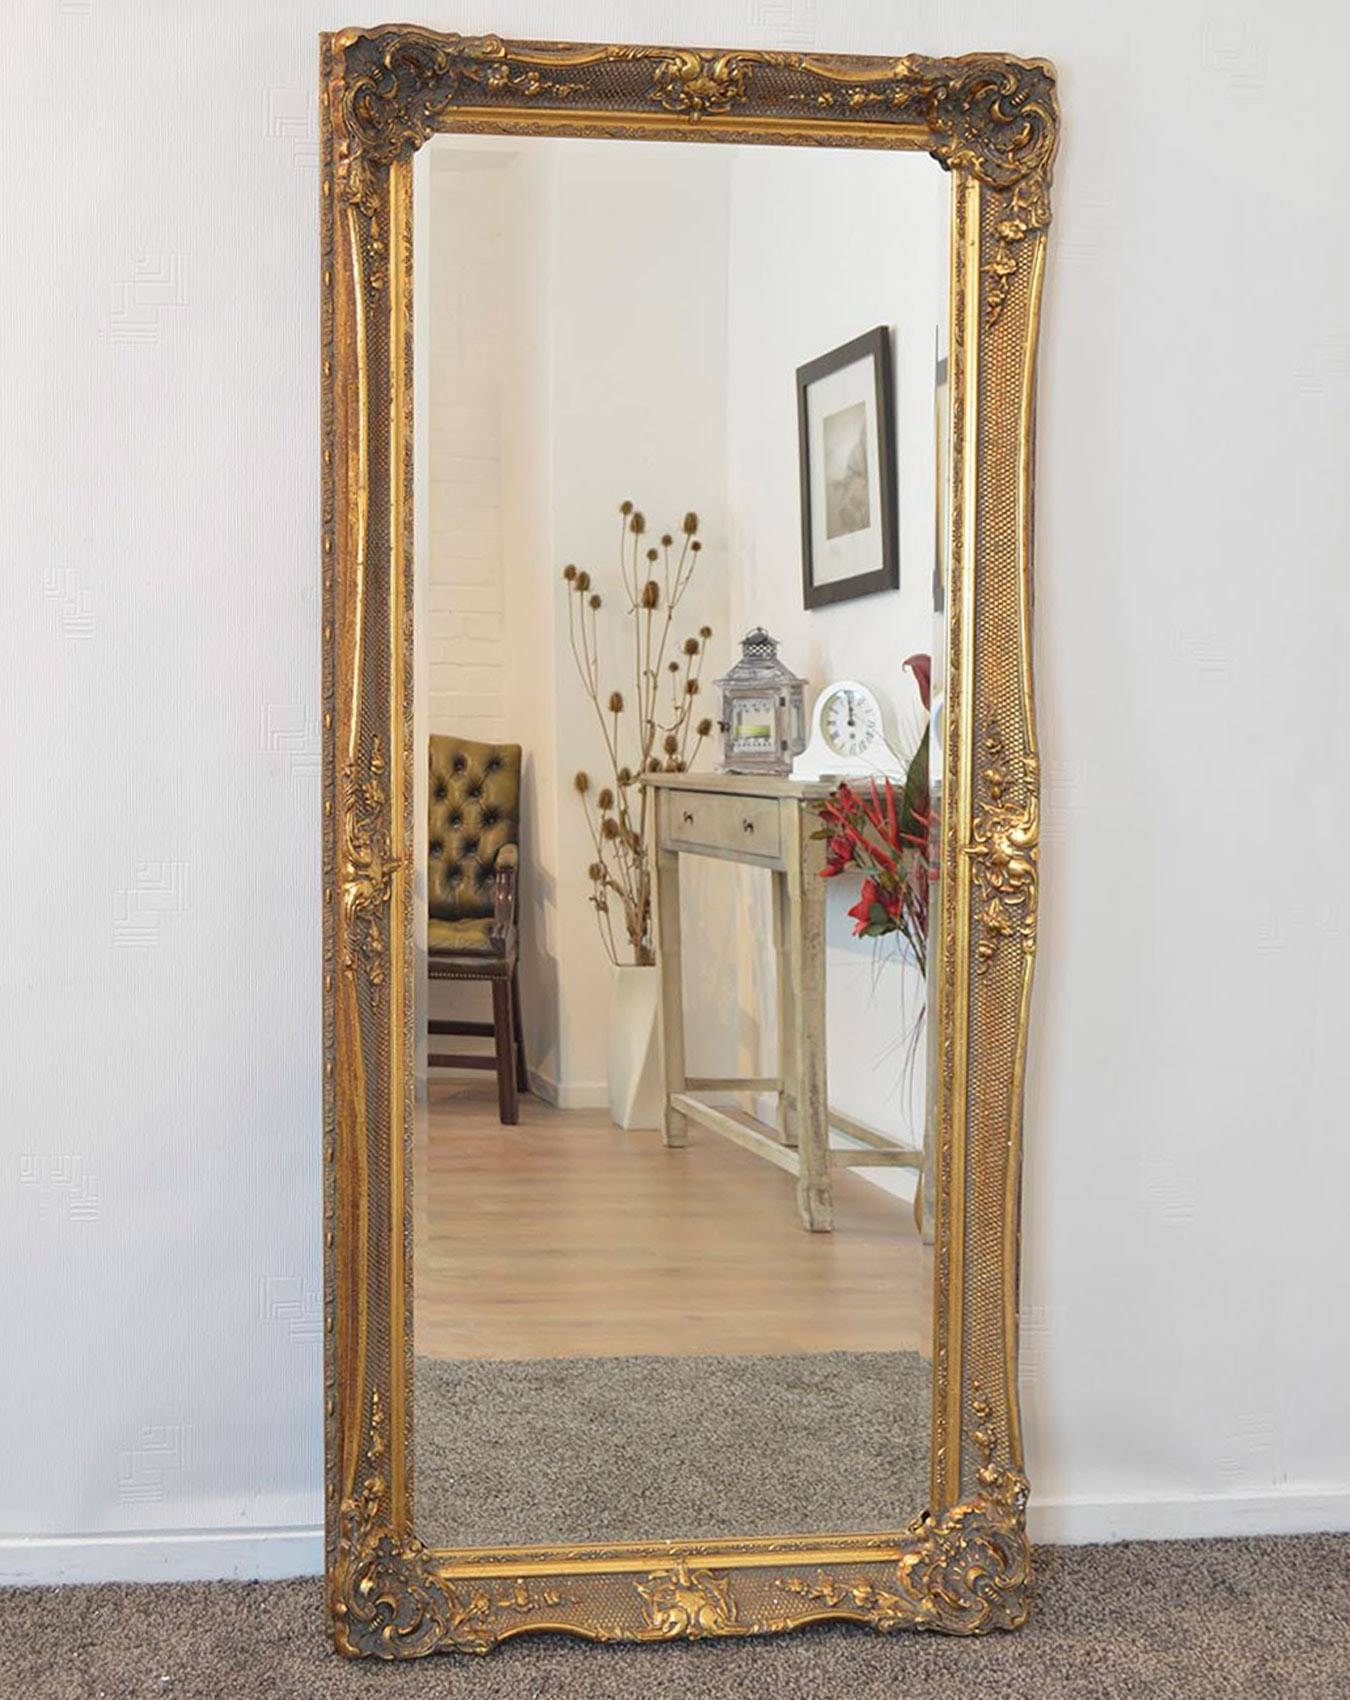 Gold Ornate Full Length Mirror 81Cm X 173Cm | Large Mirrors pertaining to Ornate Full Length Mirrors (Image 20 of 25)